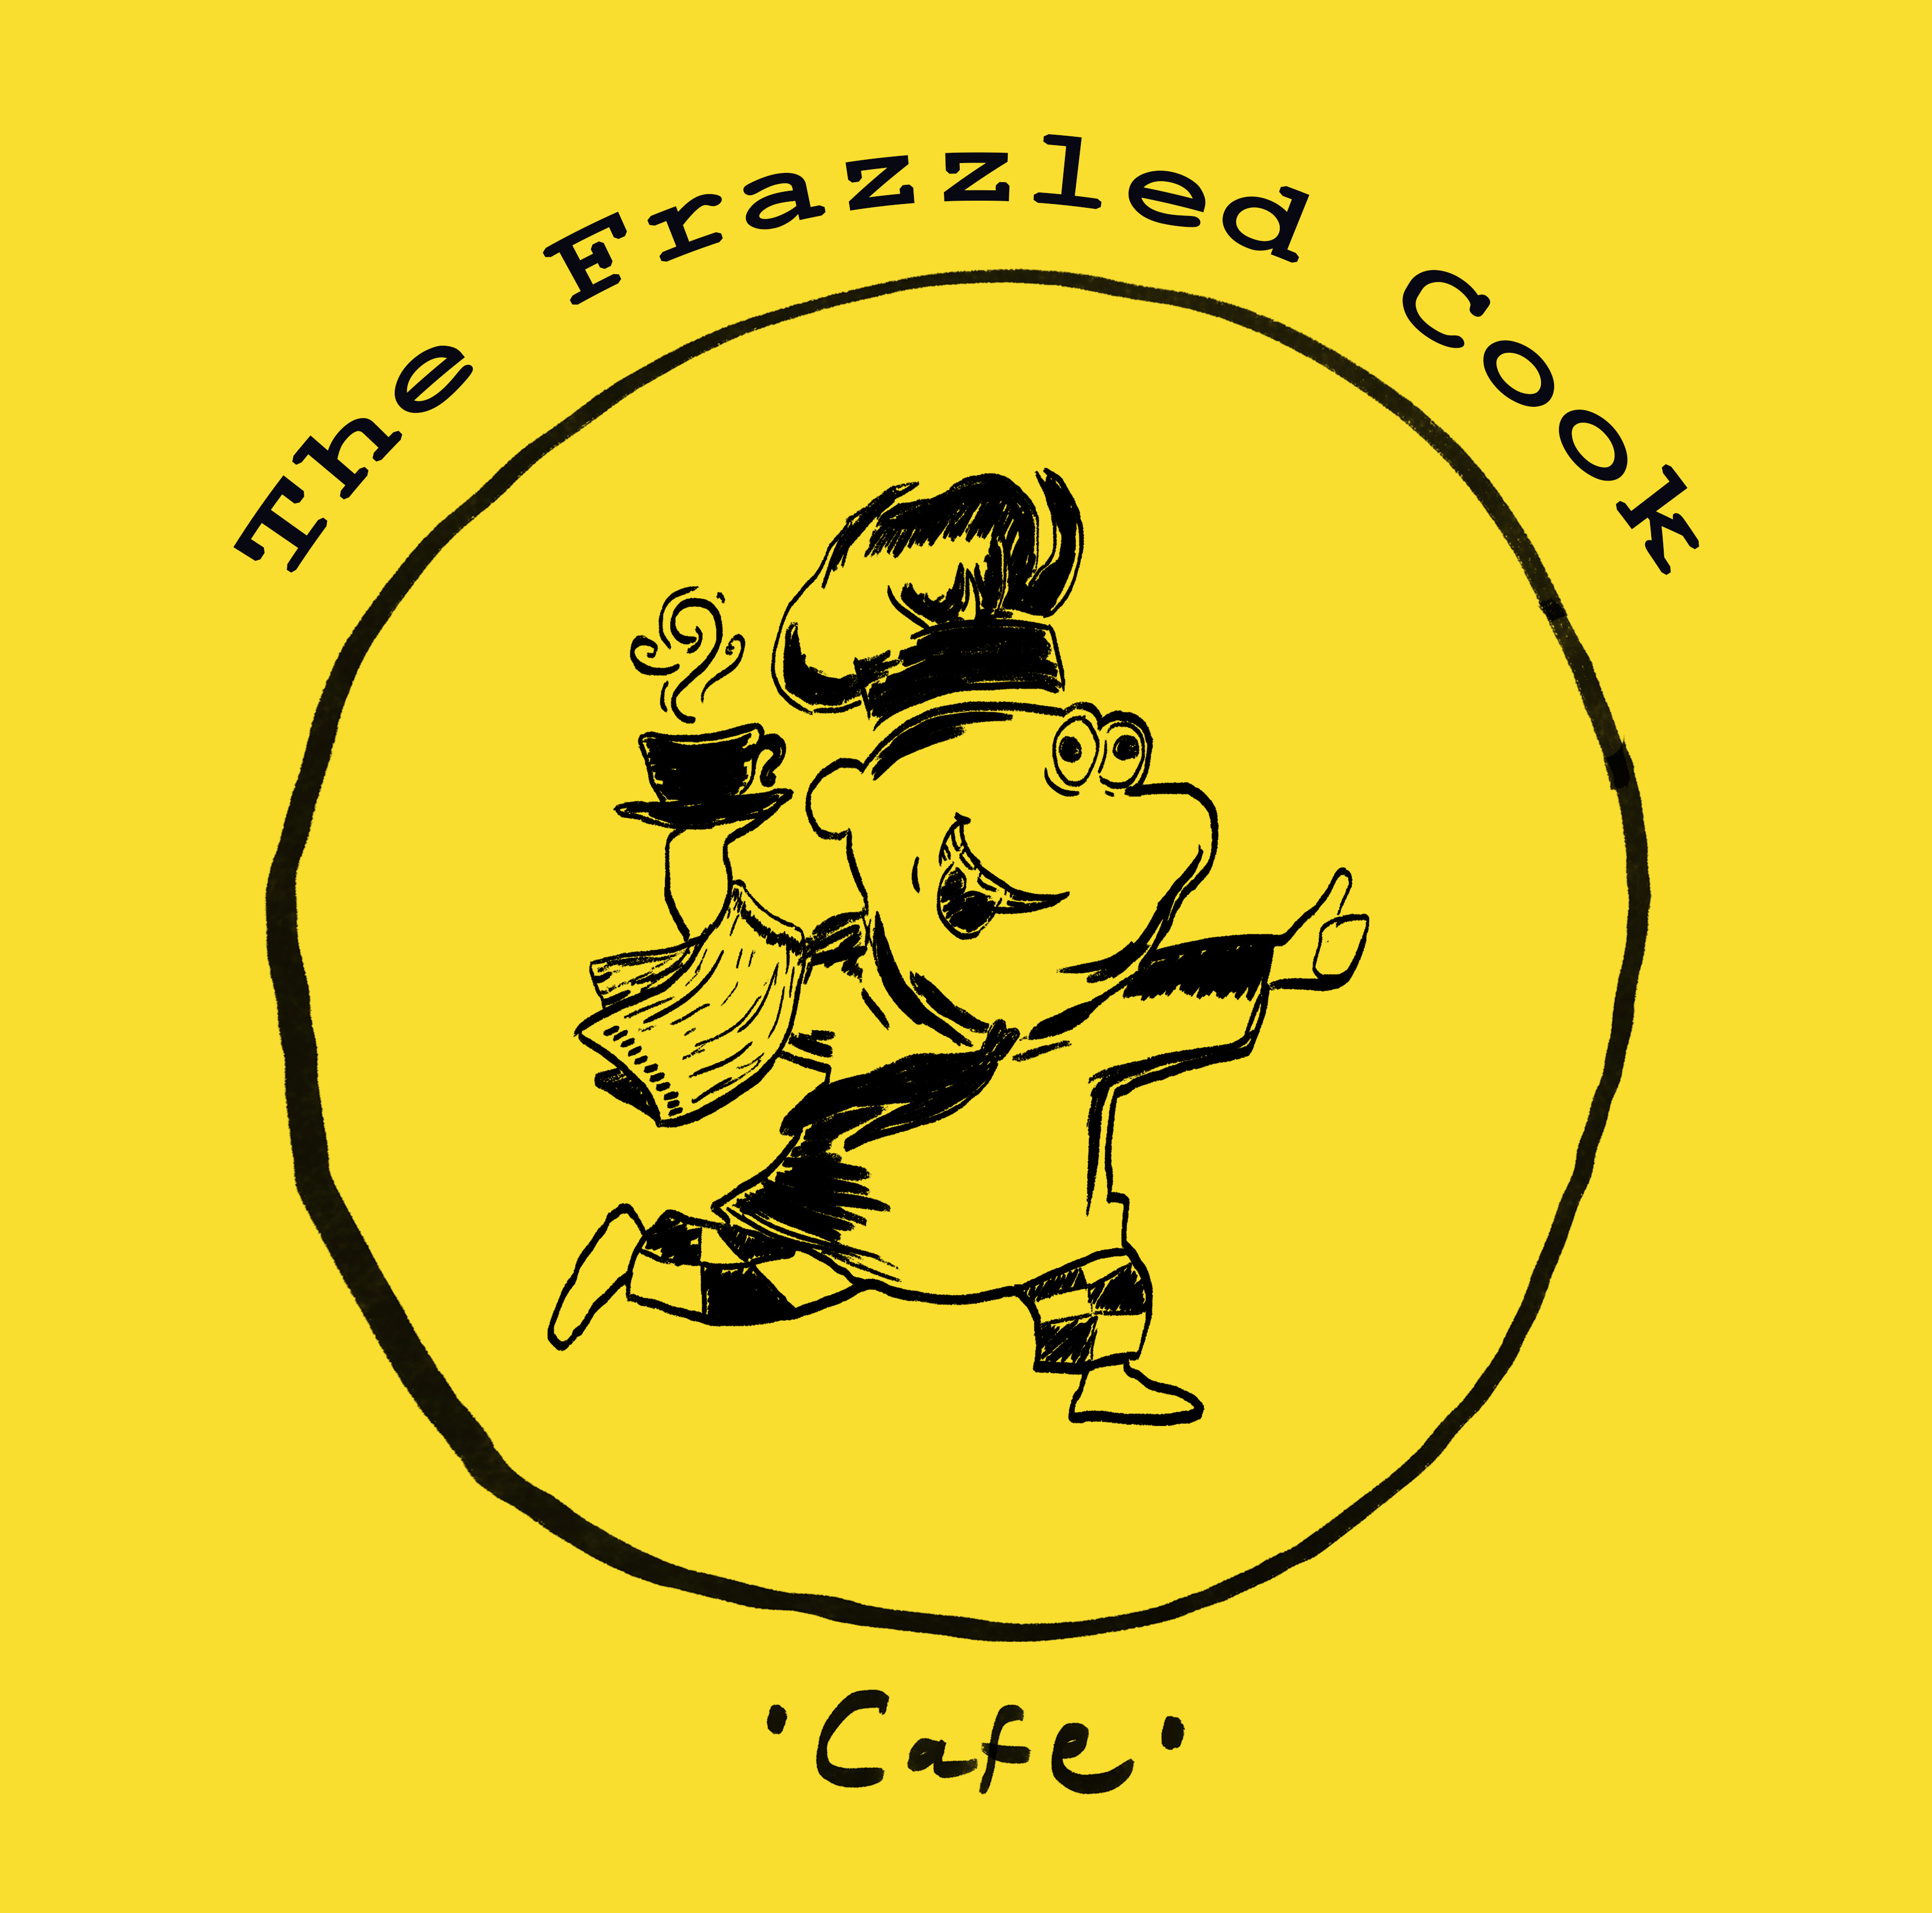 Frazzled Cook Logo